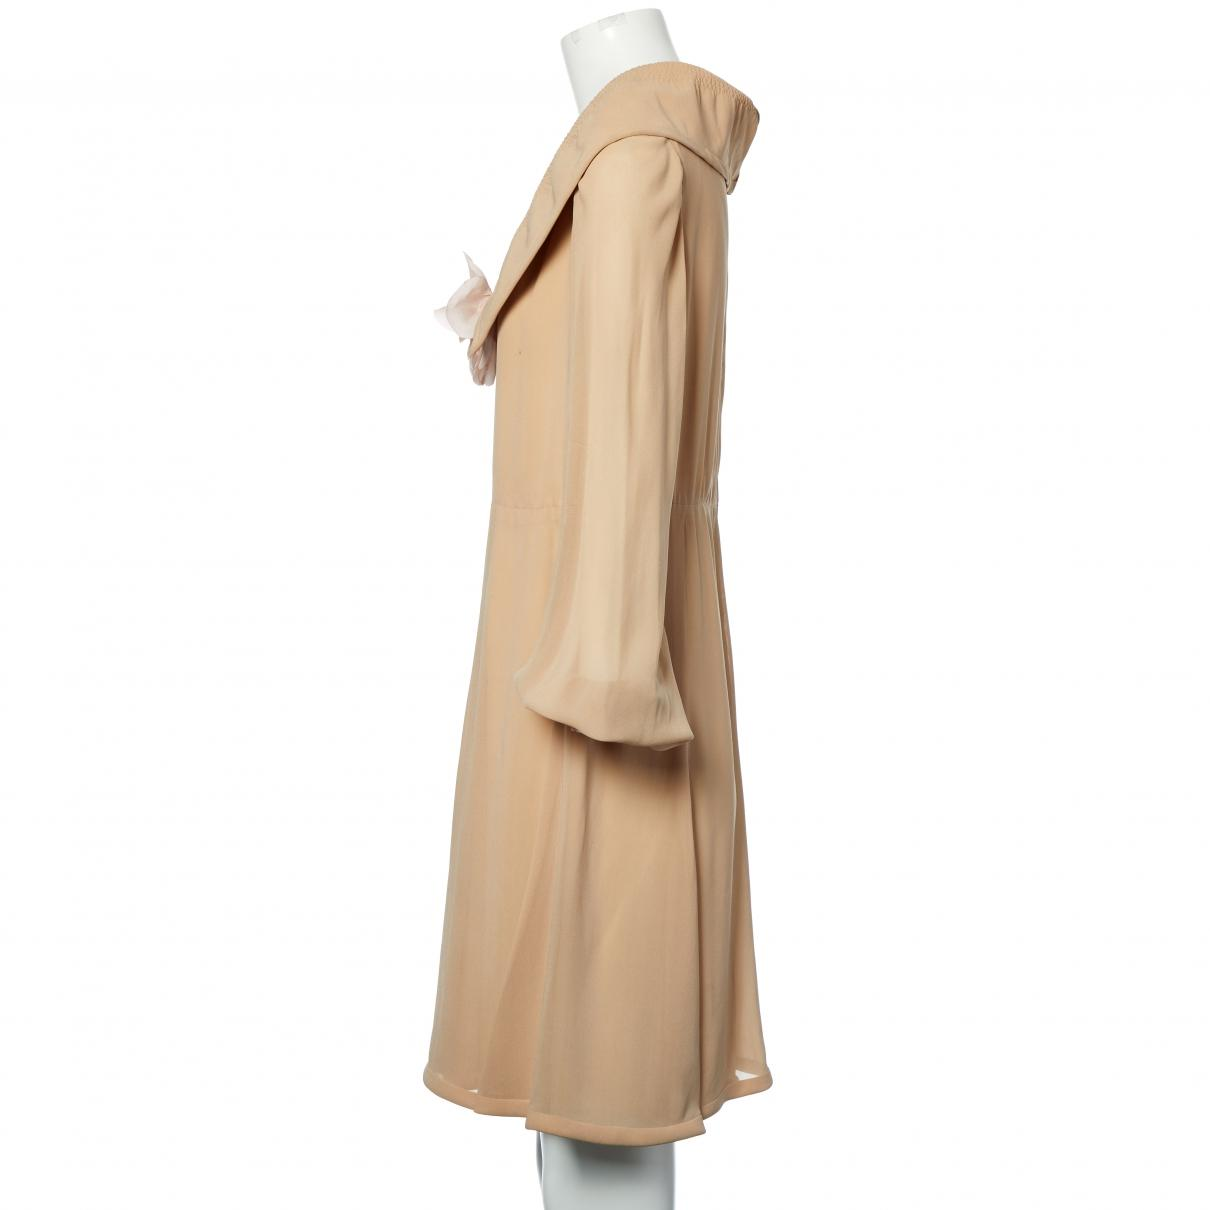 f8e8f8ef Lyst - Balmain Pre-owned Vintage Beige Silk Dresses in Natural